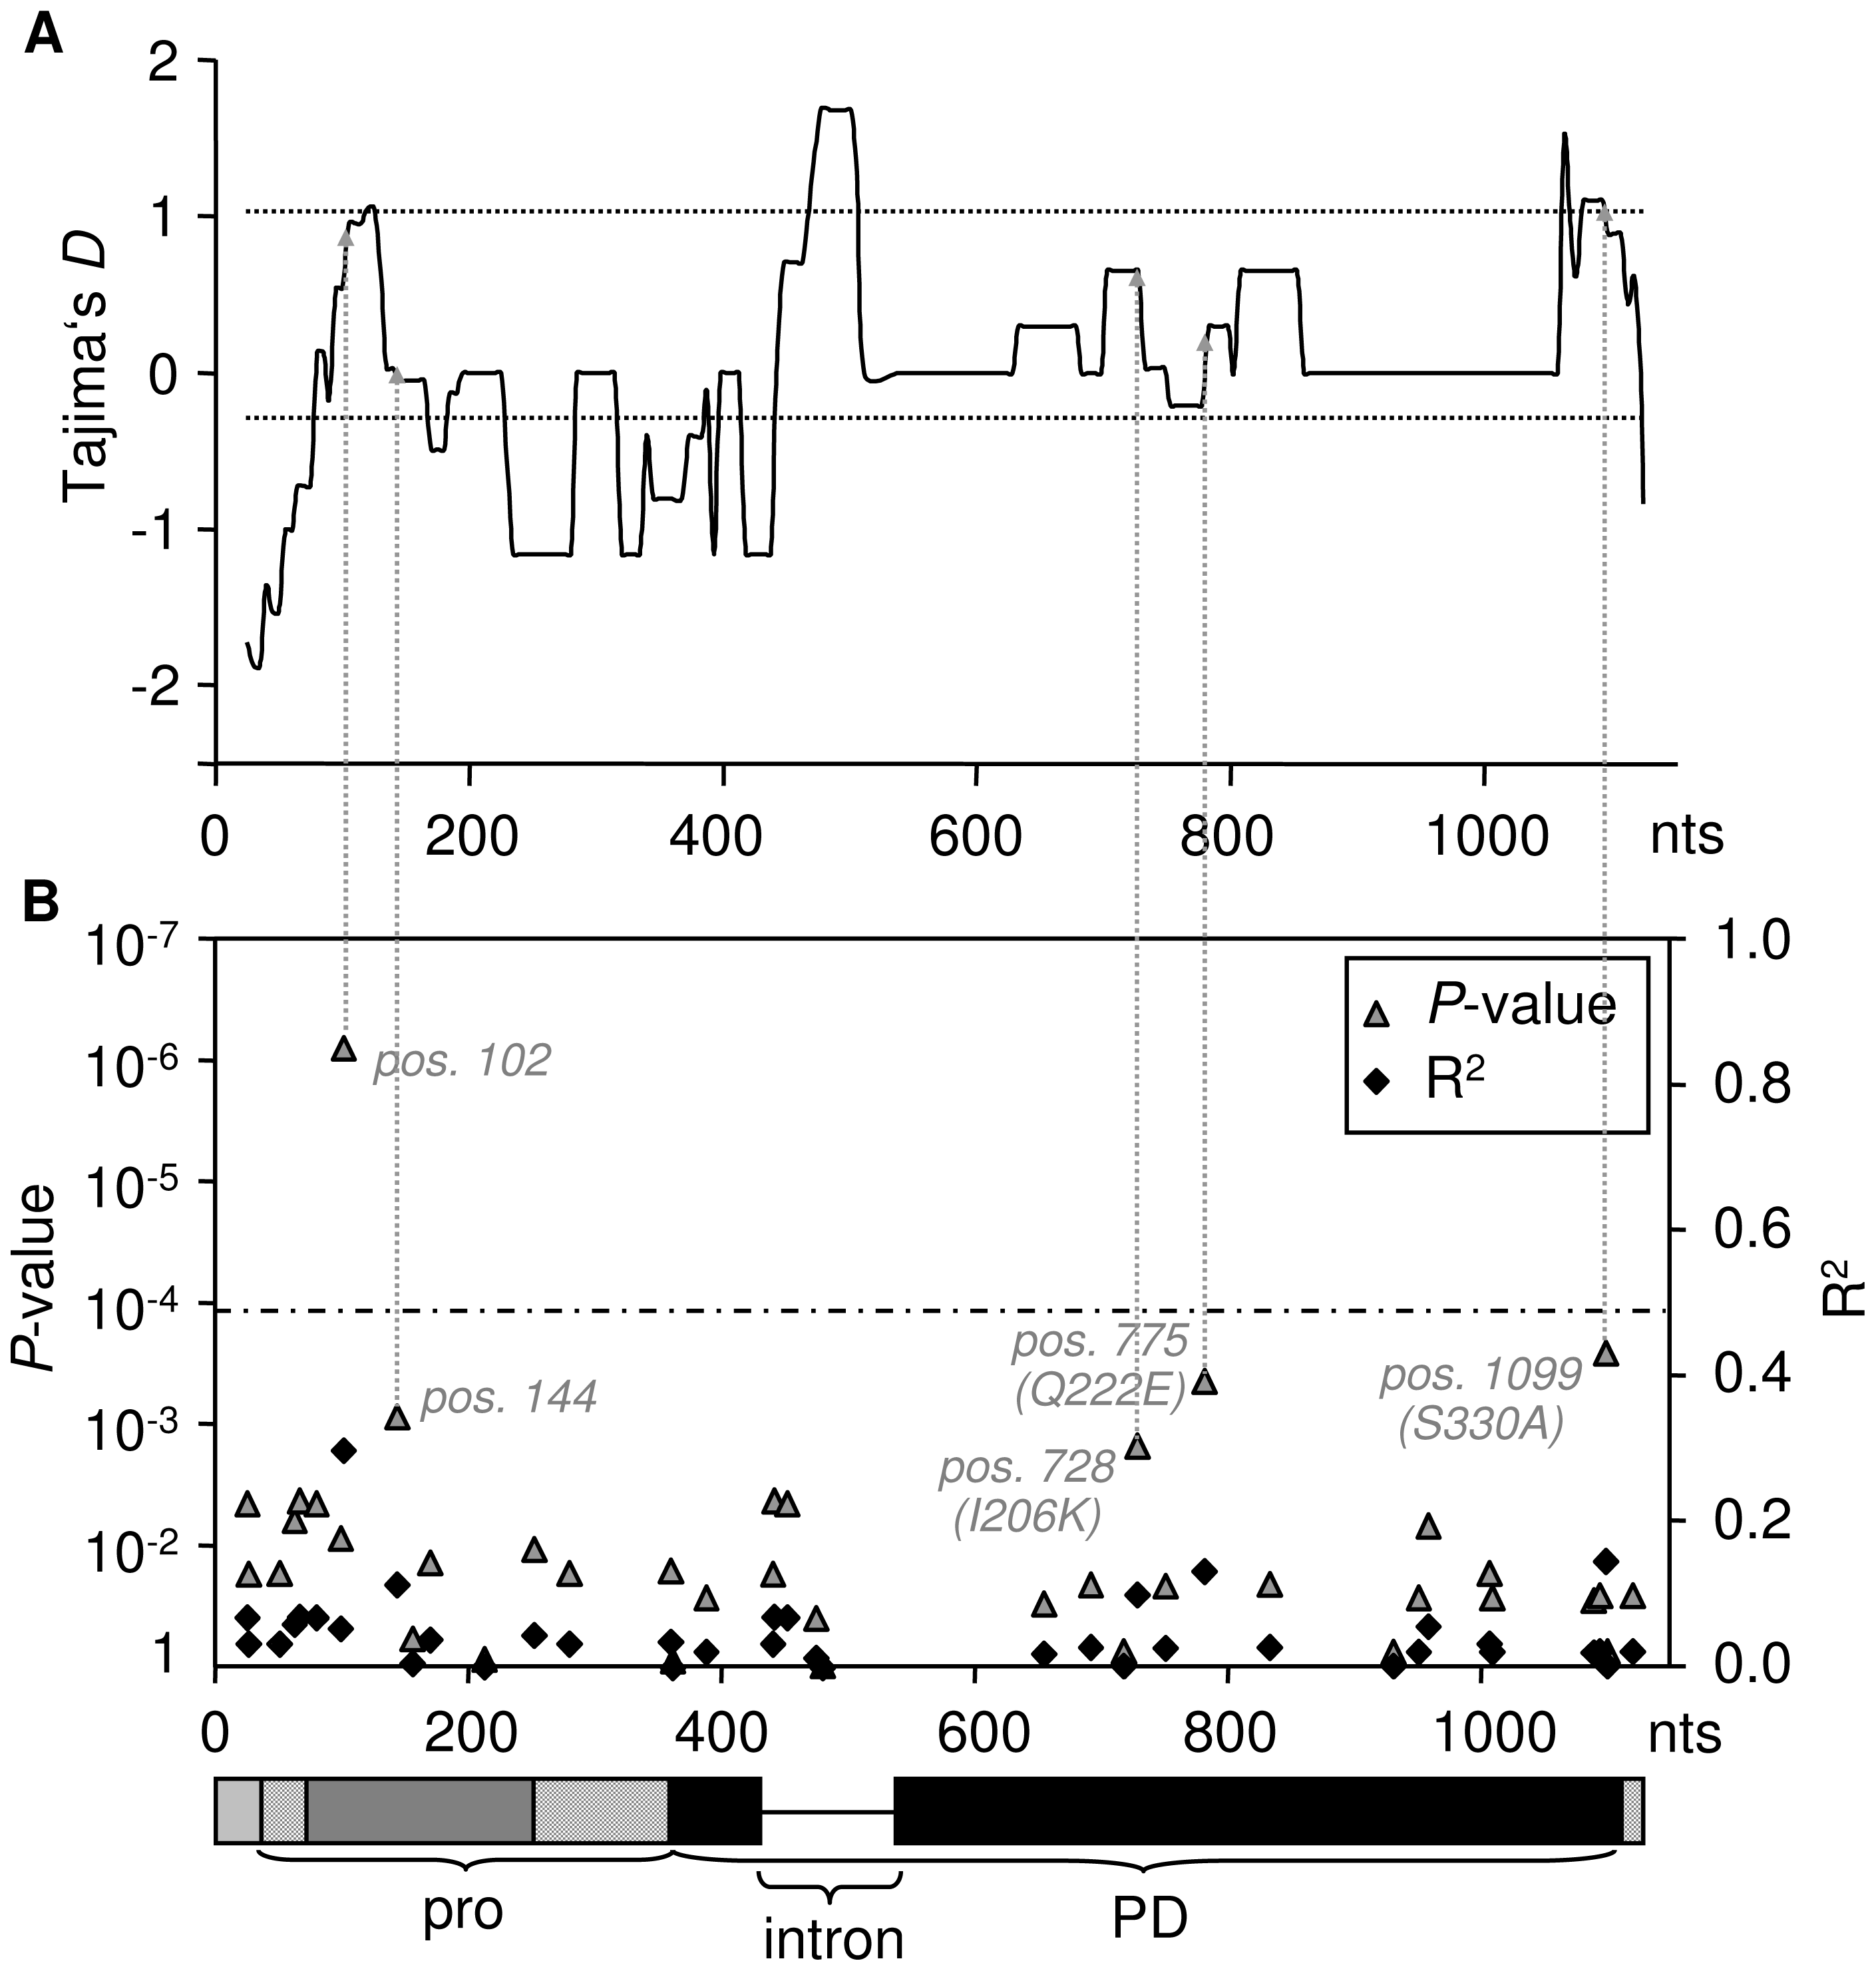 Association of the weak HR phenotype with sequence polymorphism.